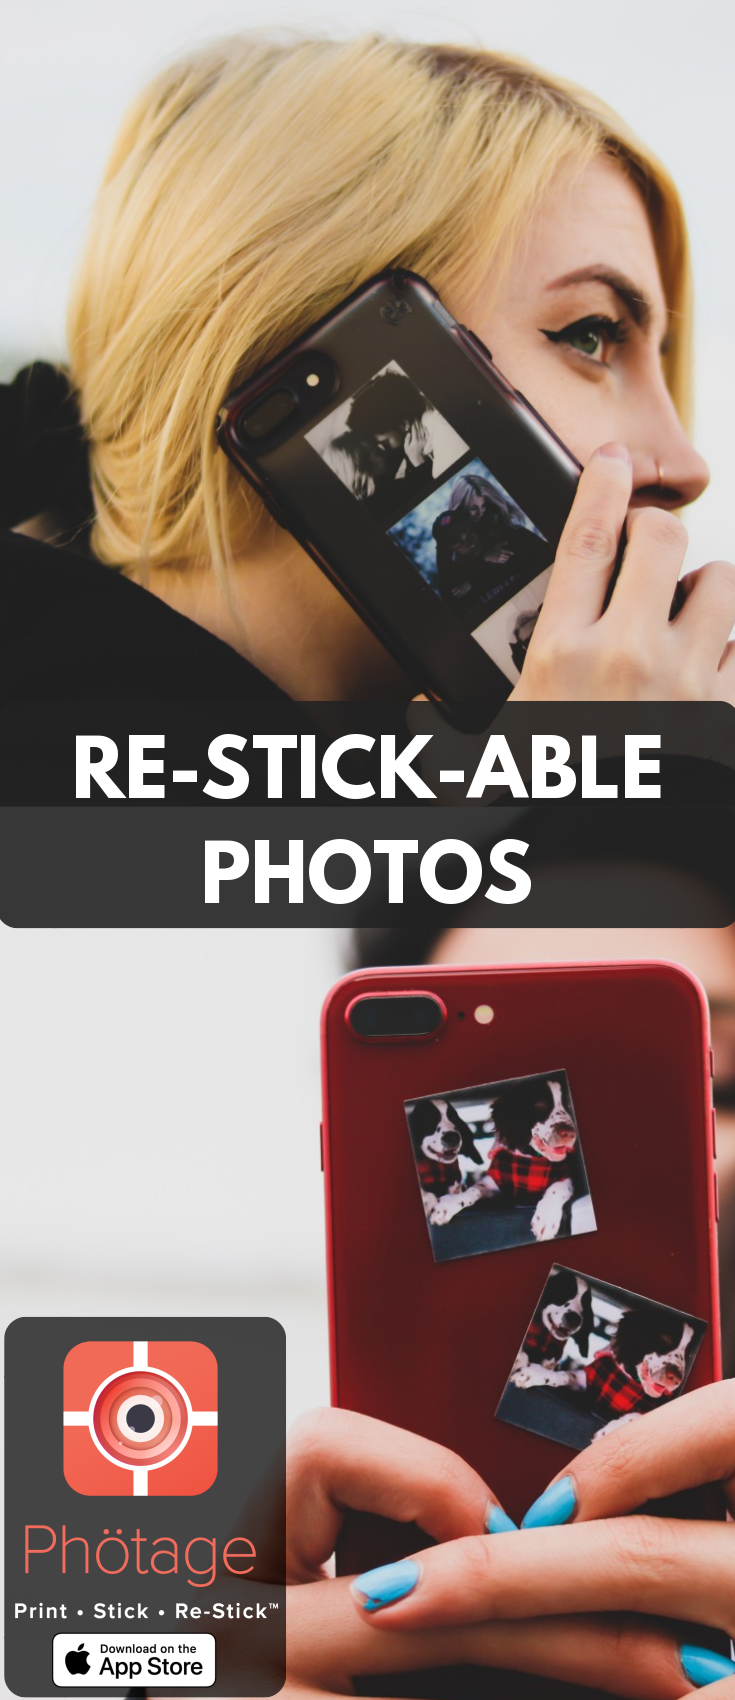 Diy Phone Stickers Phonecase Diyphone Iphonecase Iphonestickers Phones Free Photos Prints Diy Phone Phone Stickers